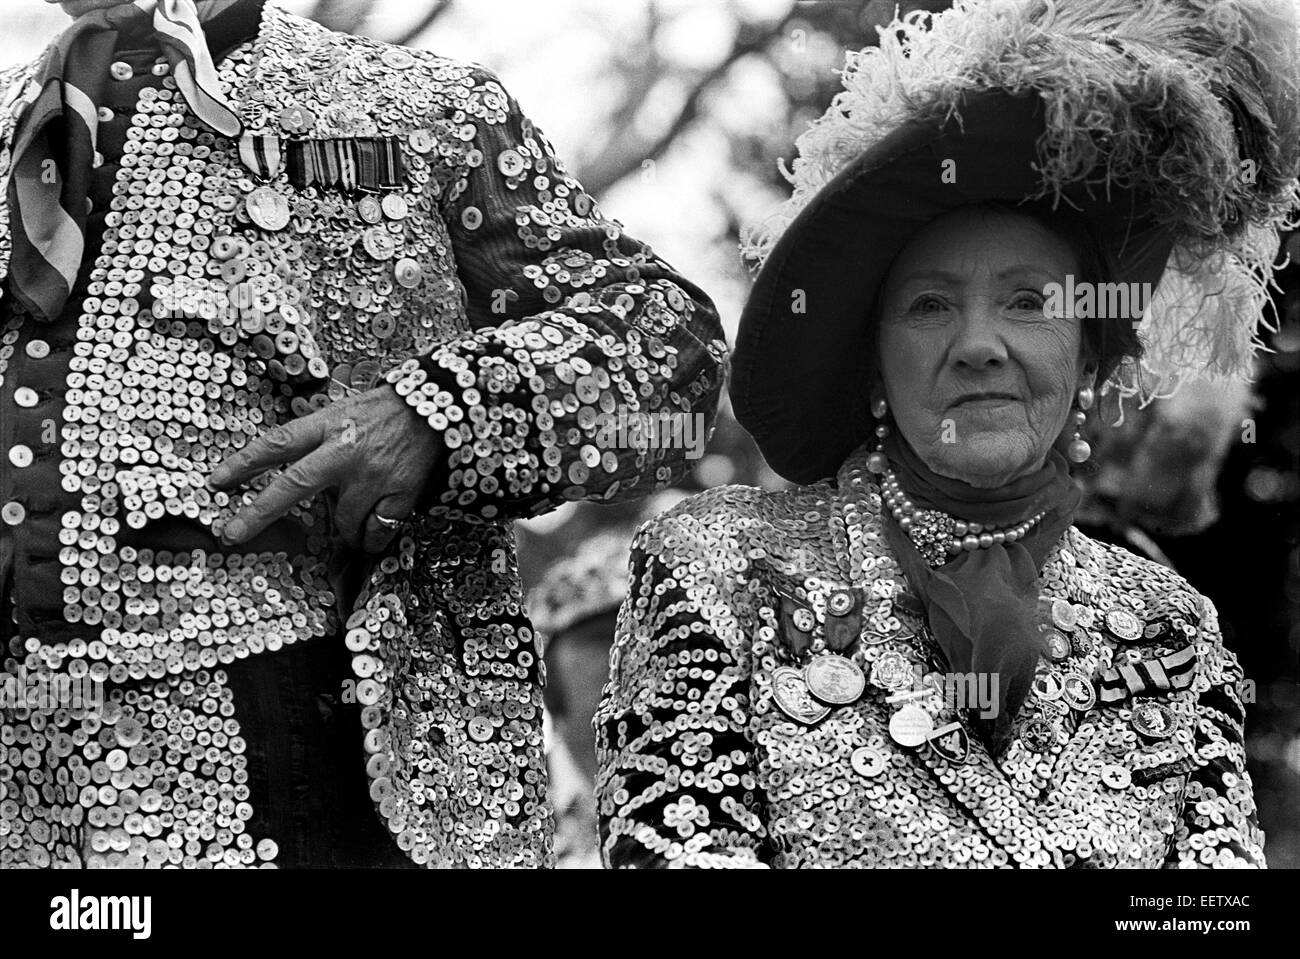 Pearly kings and Queens taking part in a  London event in Battersea Park in 1976 - Stock Image